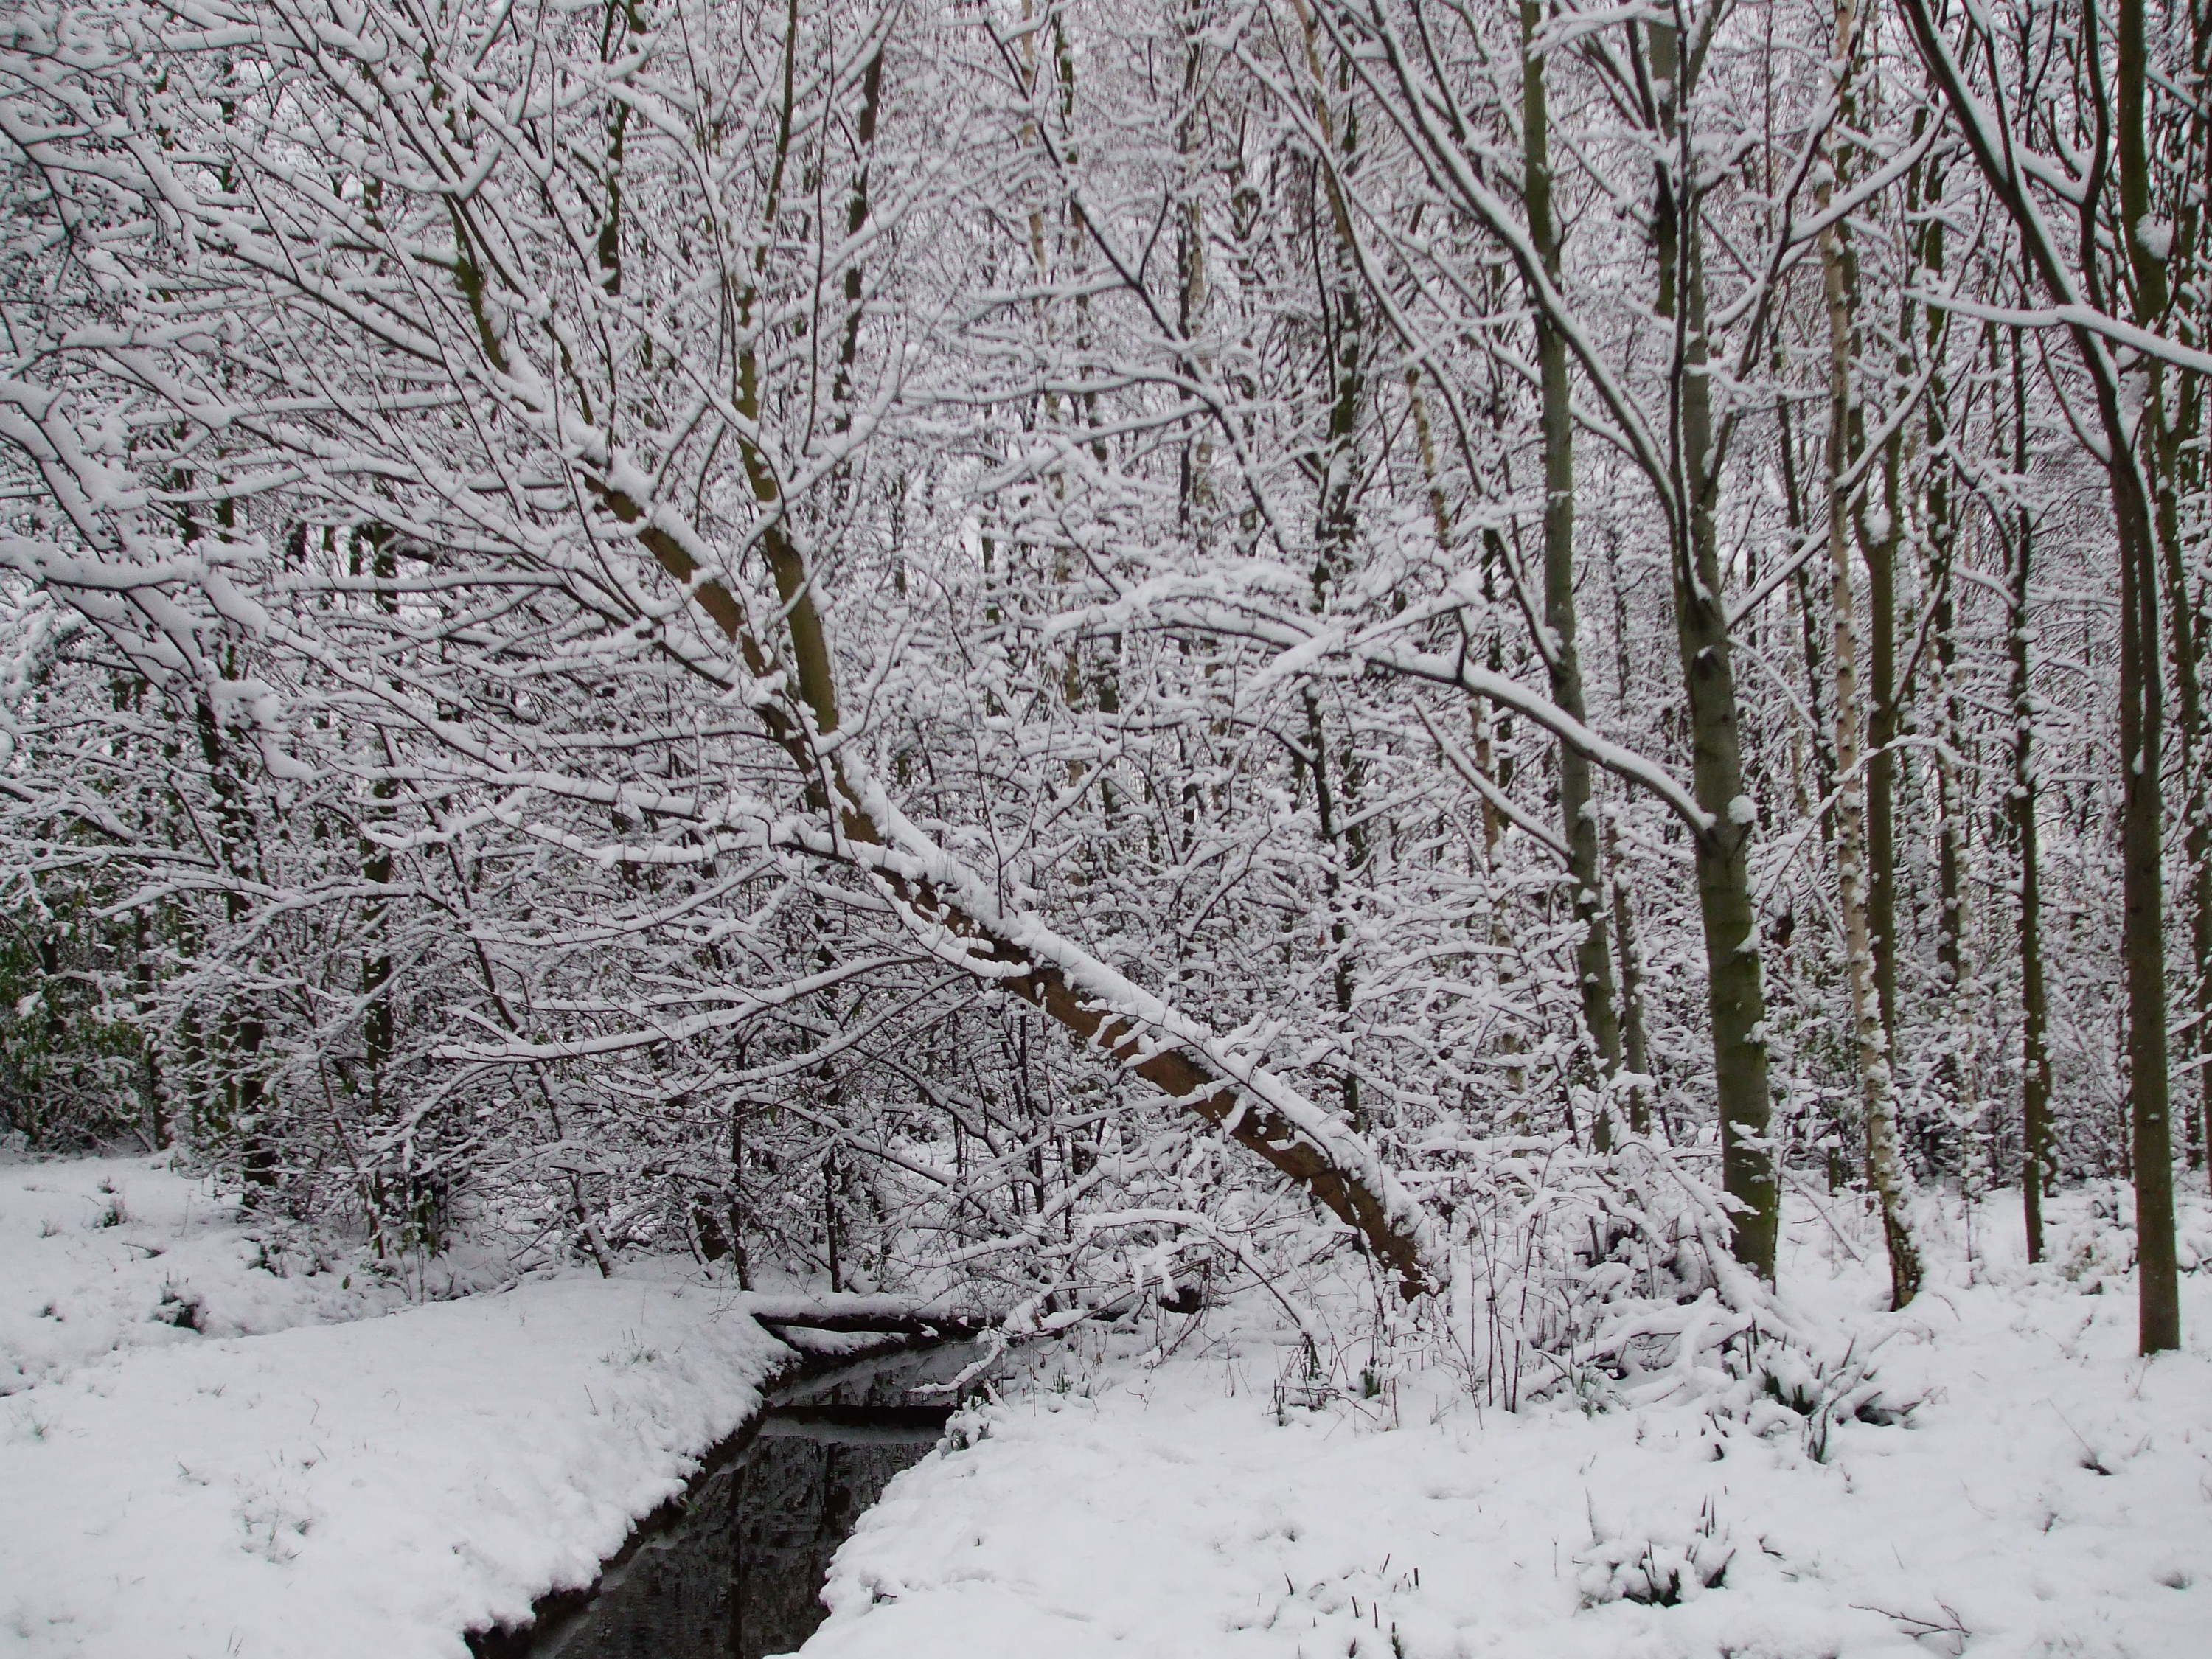 Greenwich Peninsula Ecology Park, snowy woodland